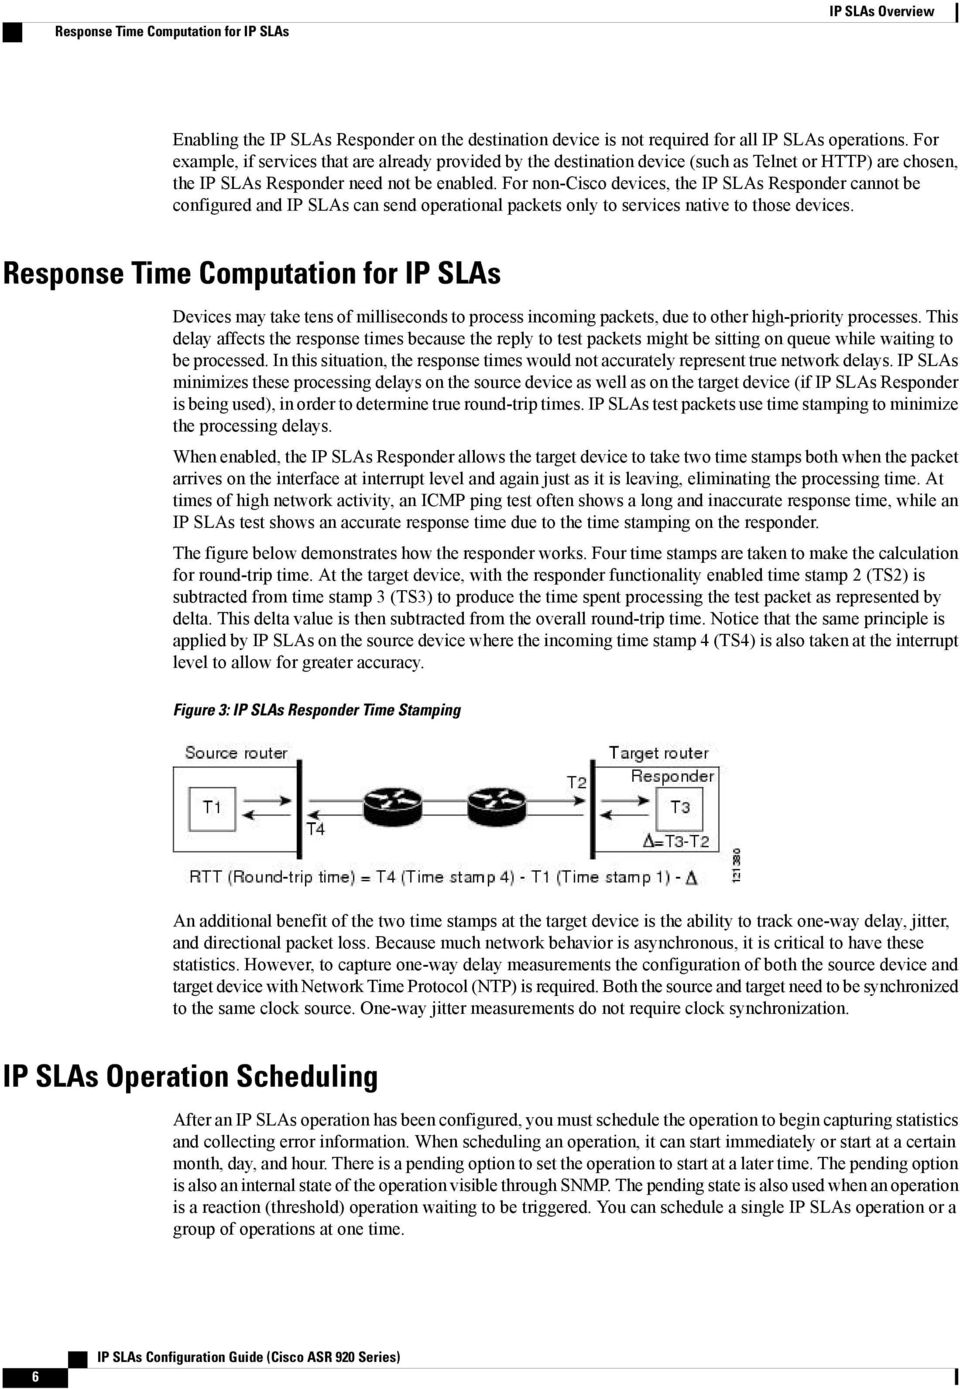 For non-cisco devices, the IP SLAs Responder cannot be configured and IP SLAs can send operational packets only to services native to those devices.